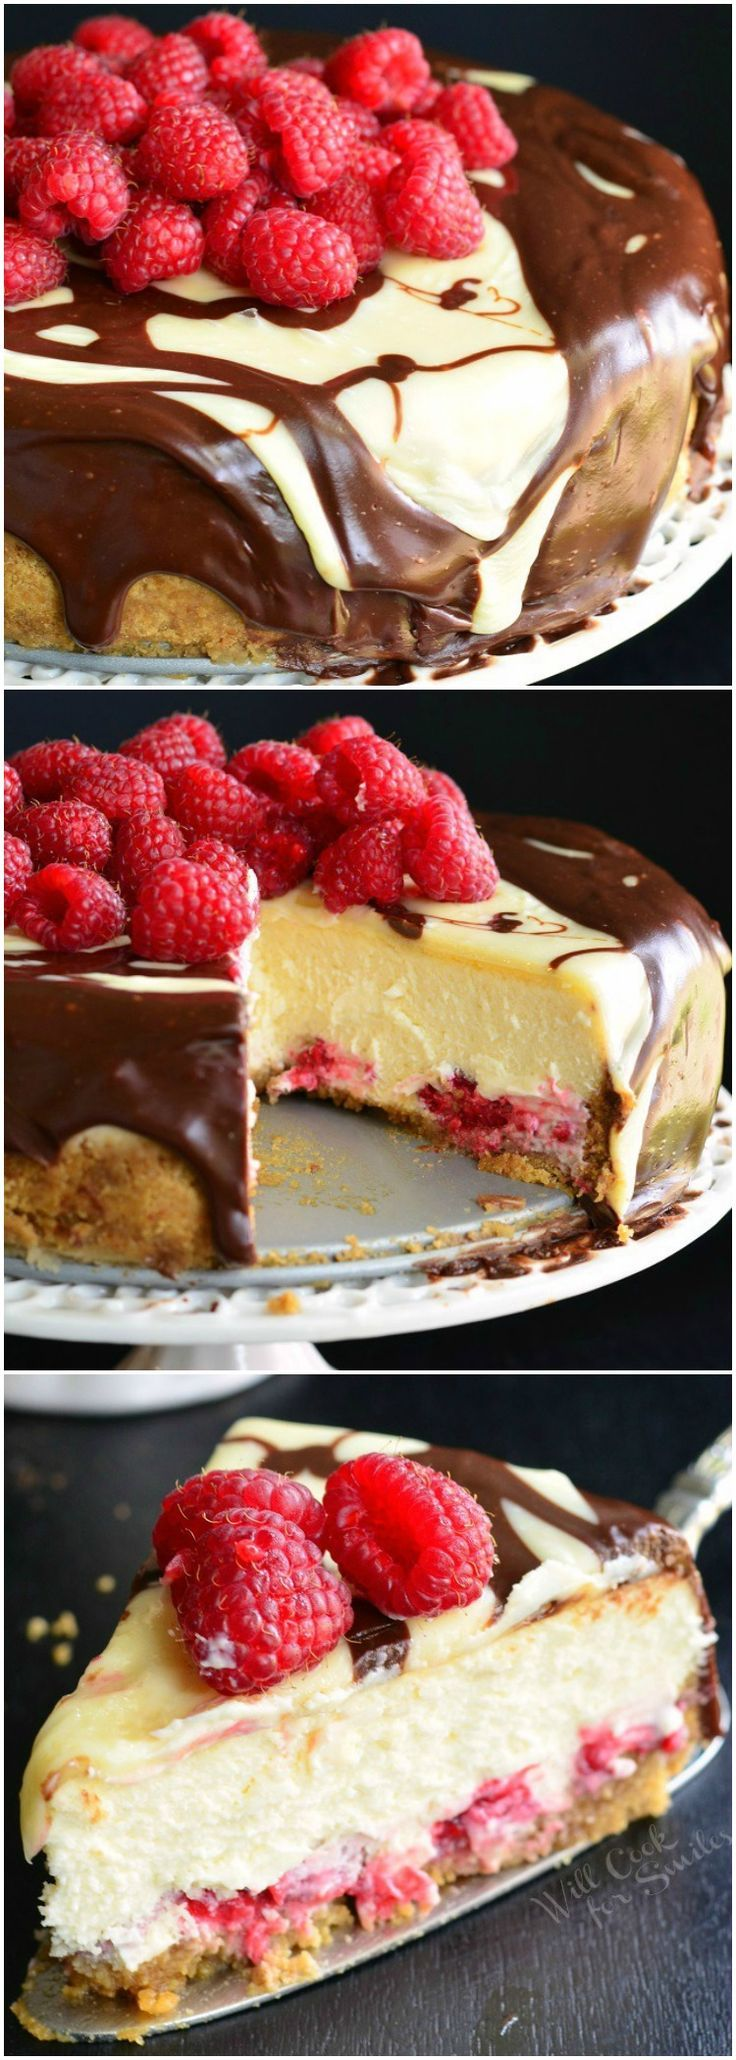 Double Chocolate Ganache and Raspberry Cheesecake! from willcookforsmiles.com #desserts